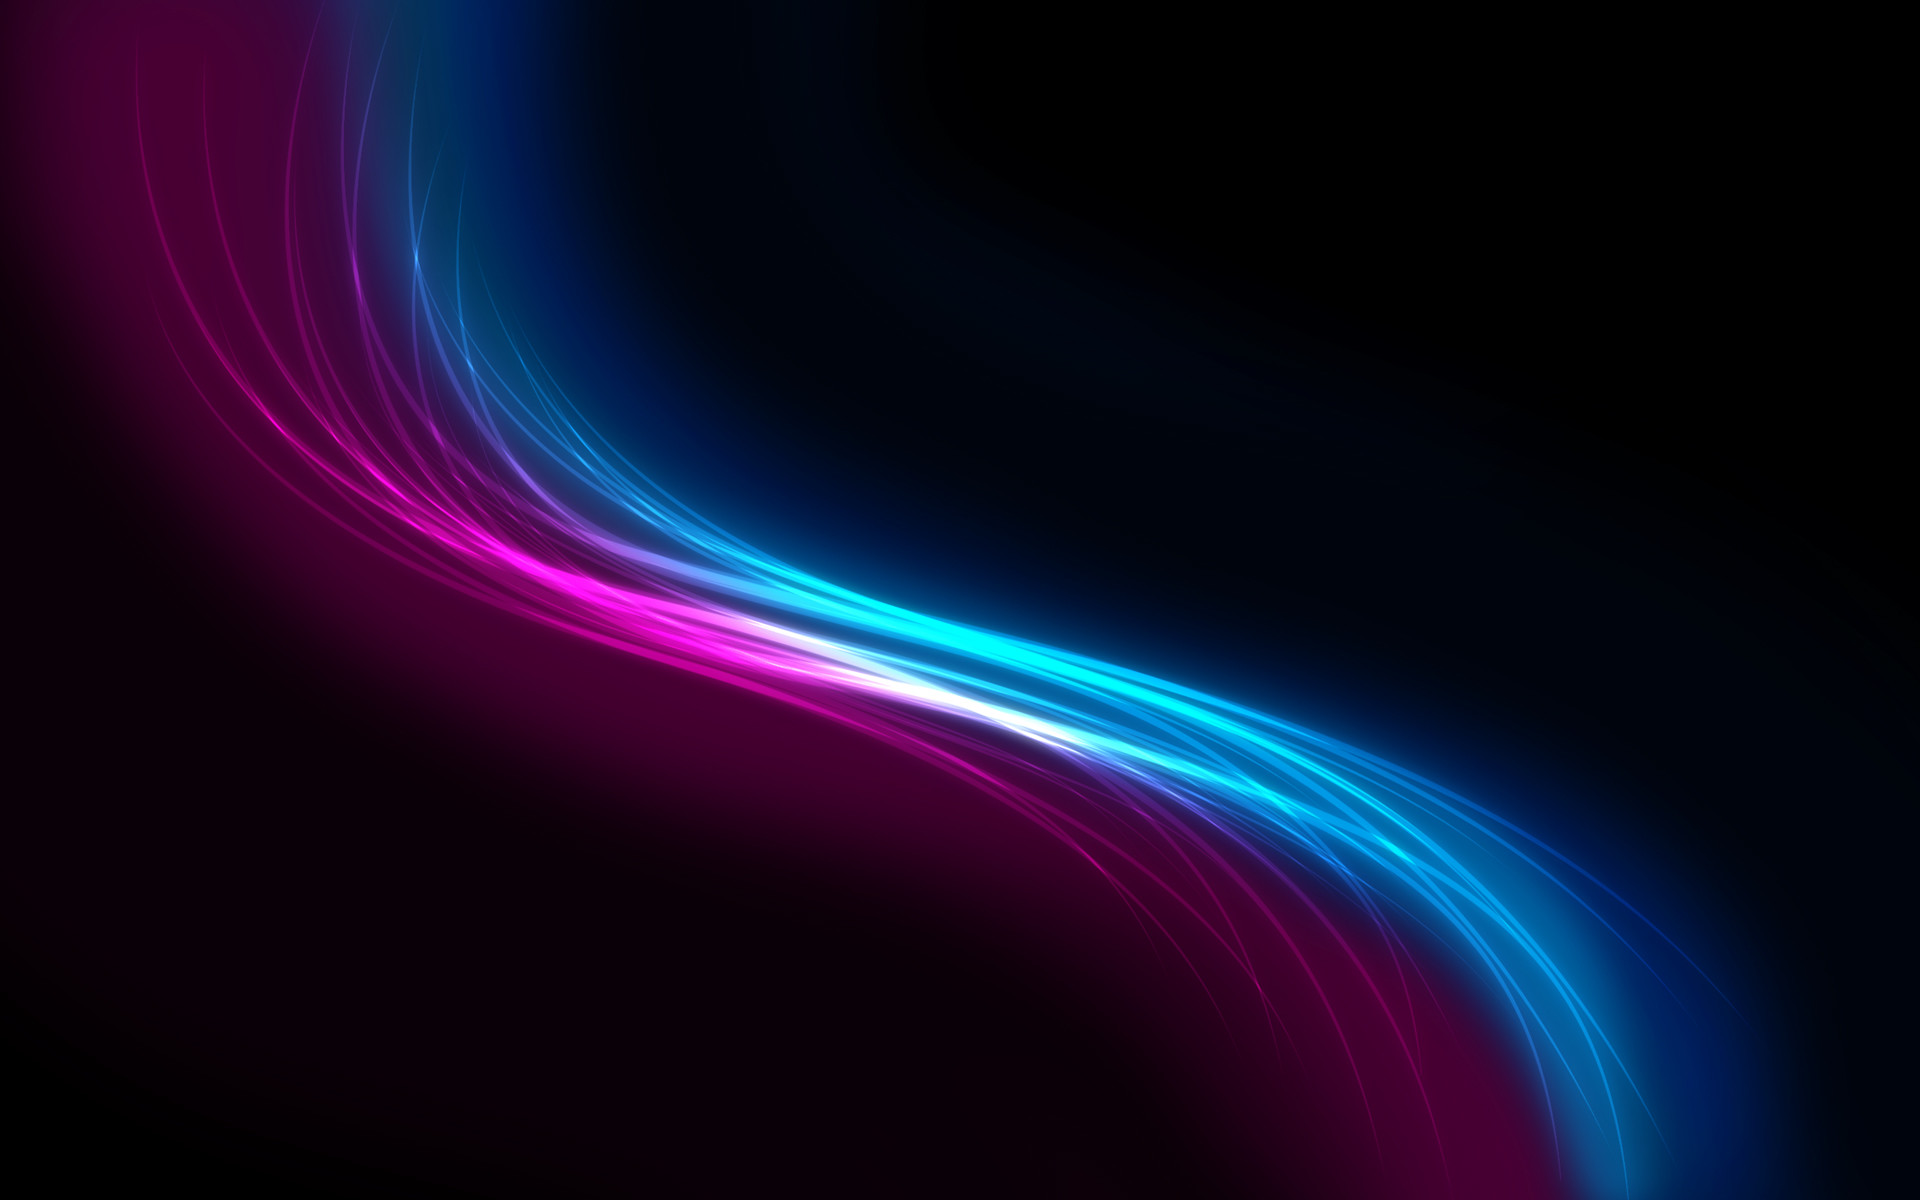 Abstract Designs   13 Quality Abstract Backgrounds, Patterns For WebDesign